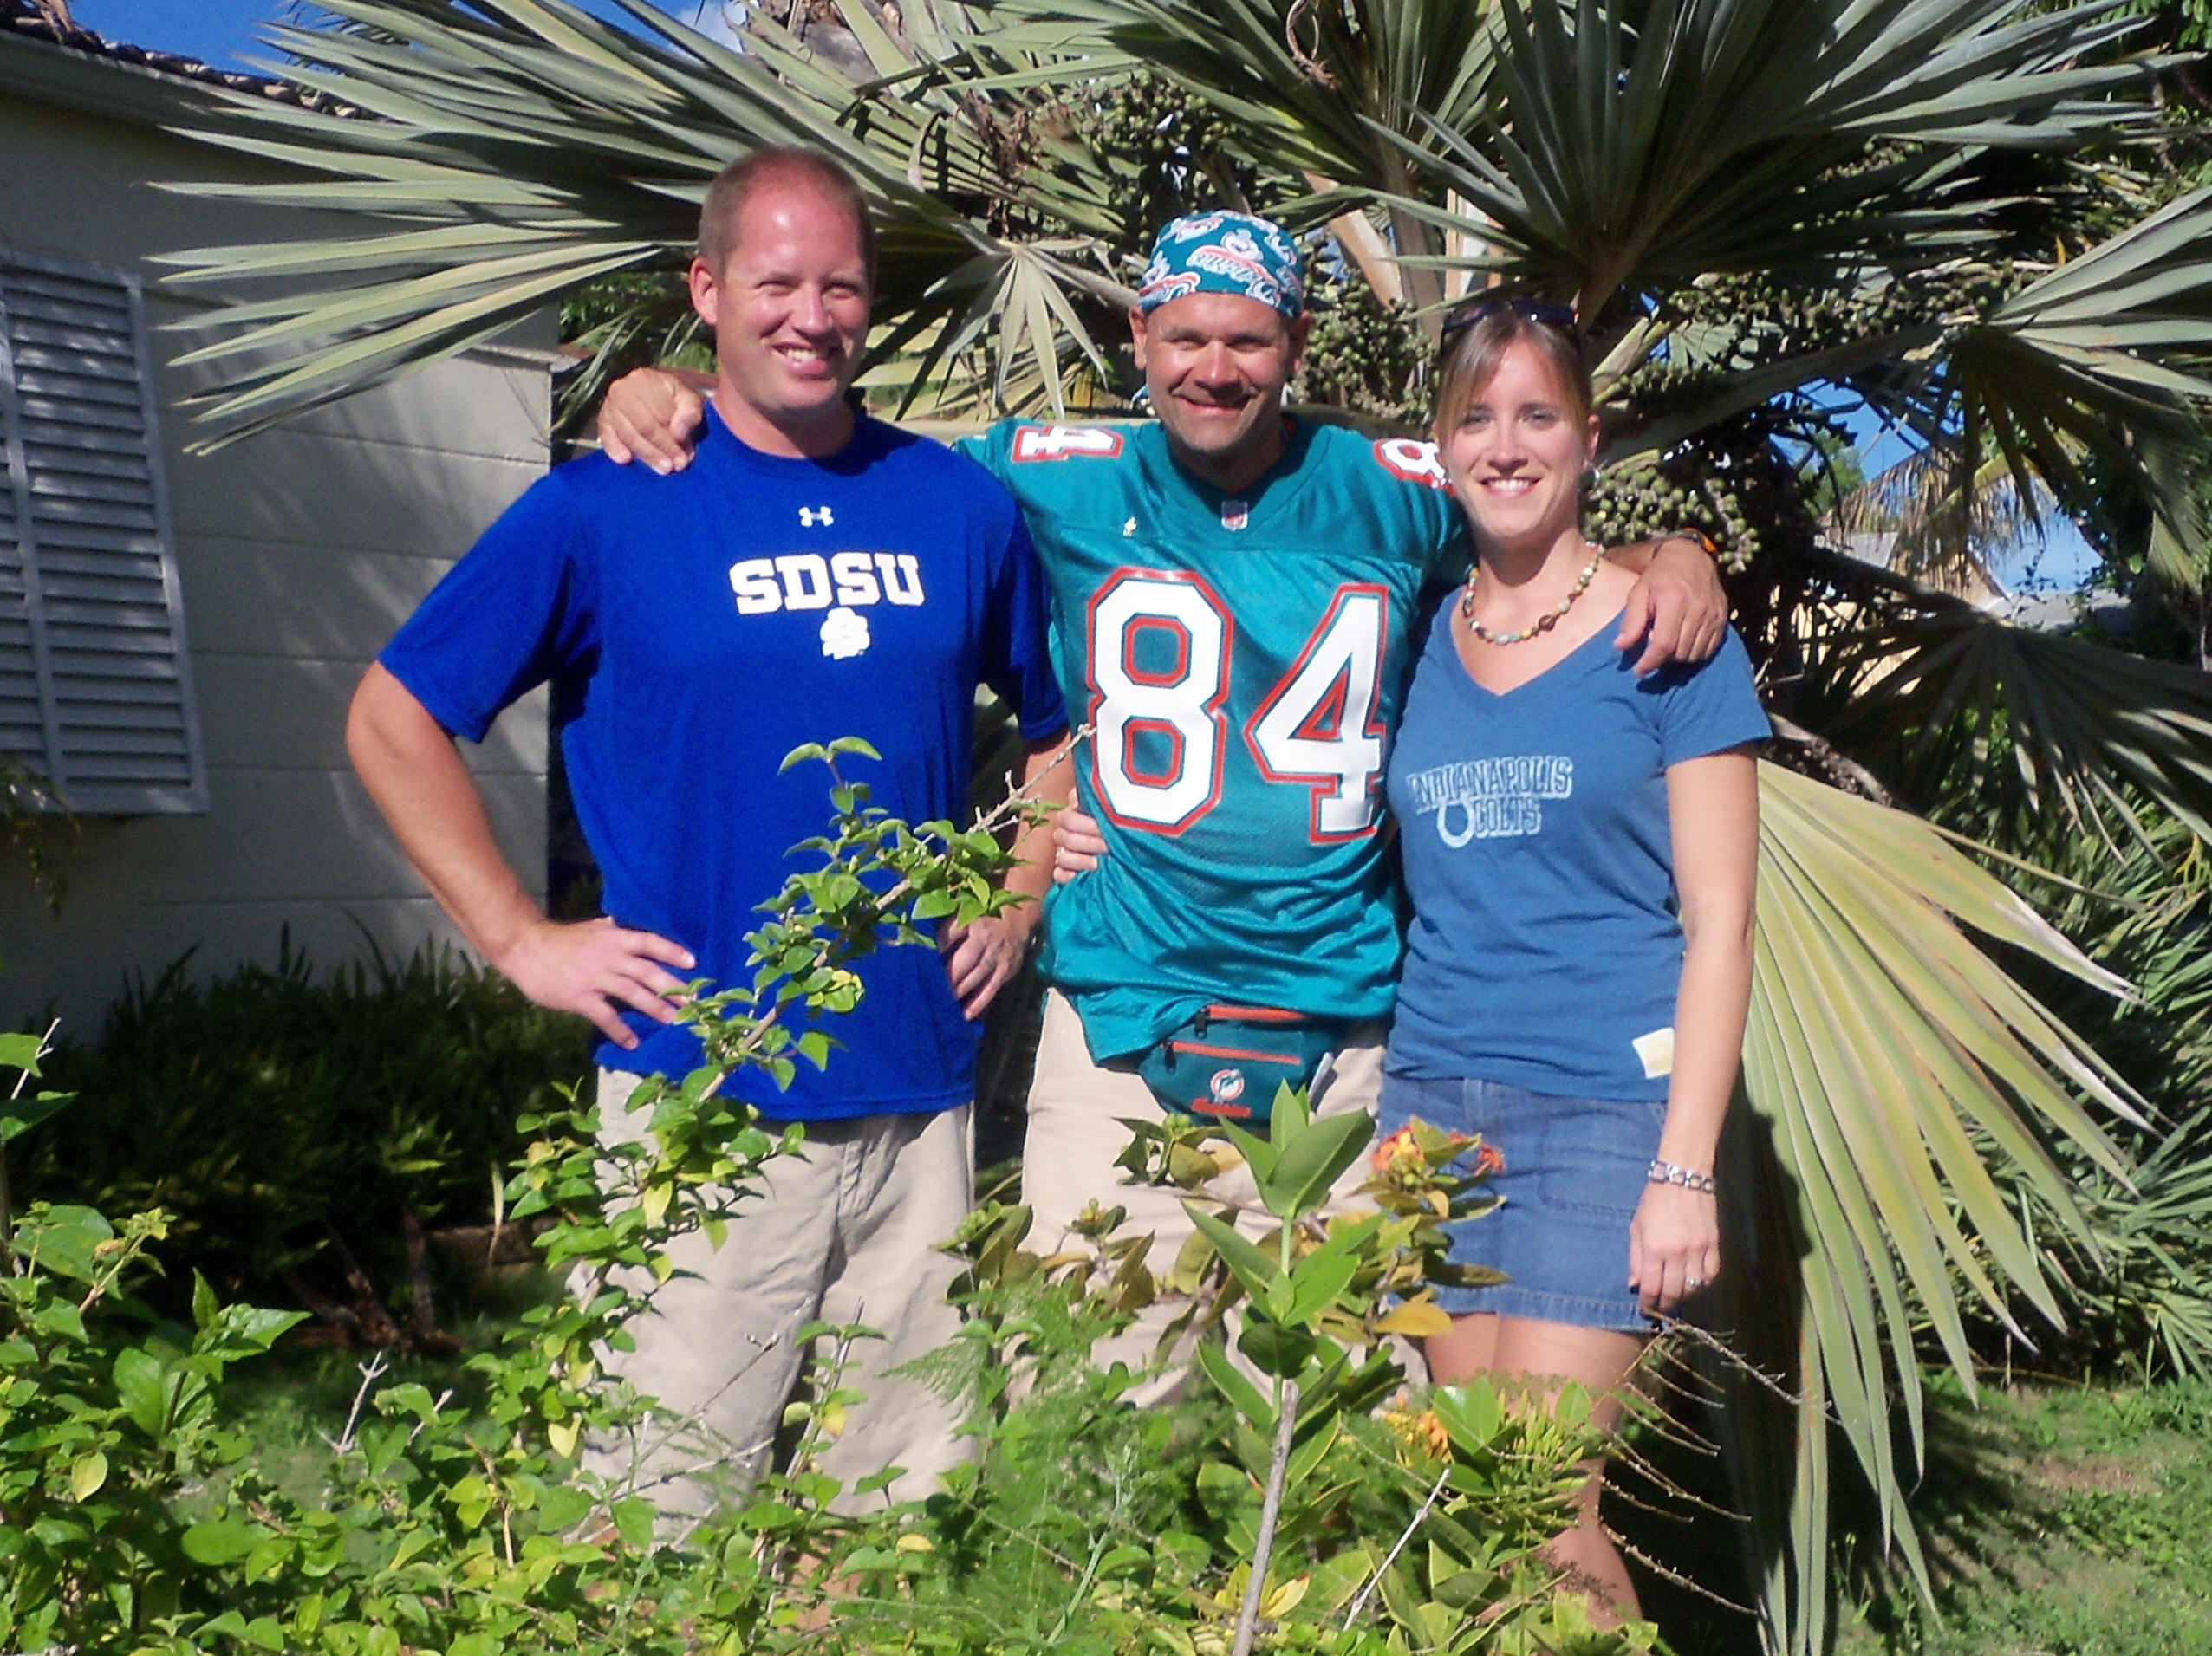 9-21-09 Friends Before MNF In Miami, Florida